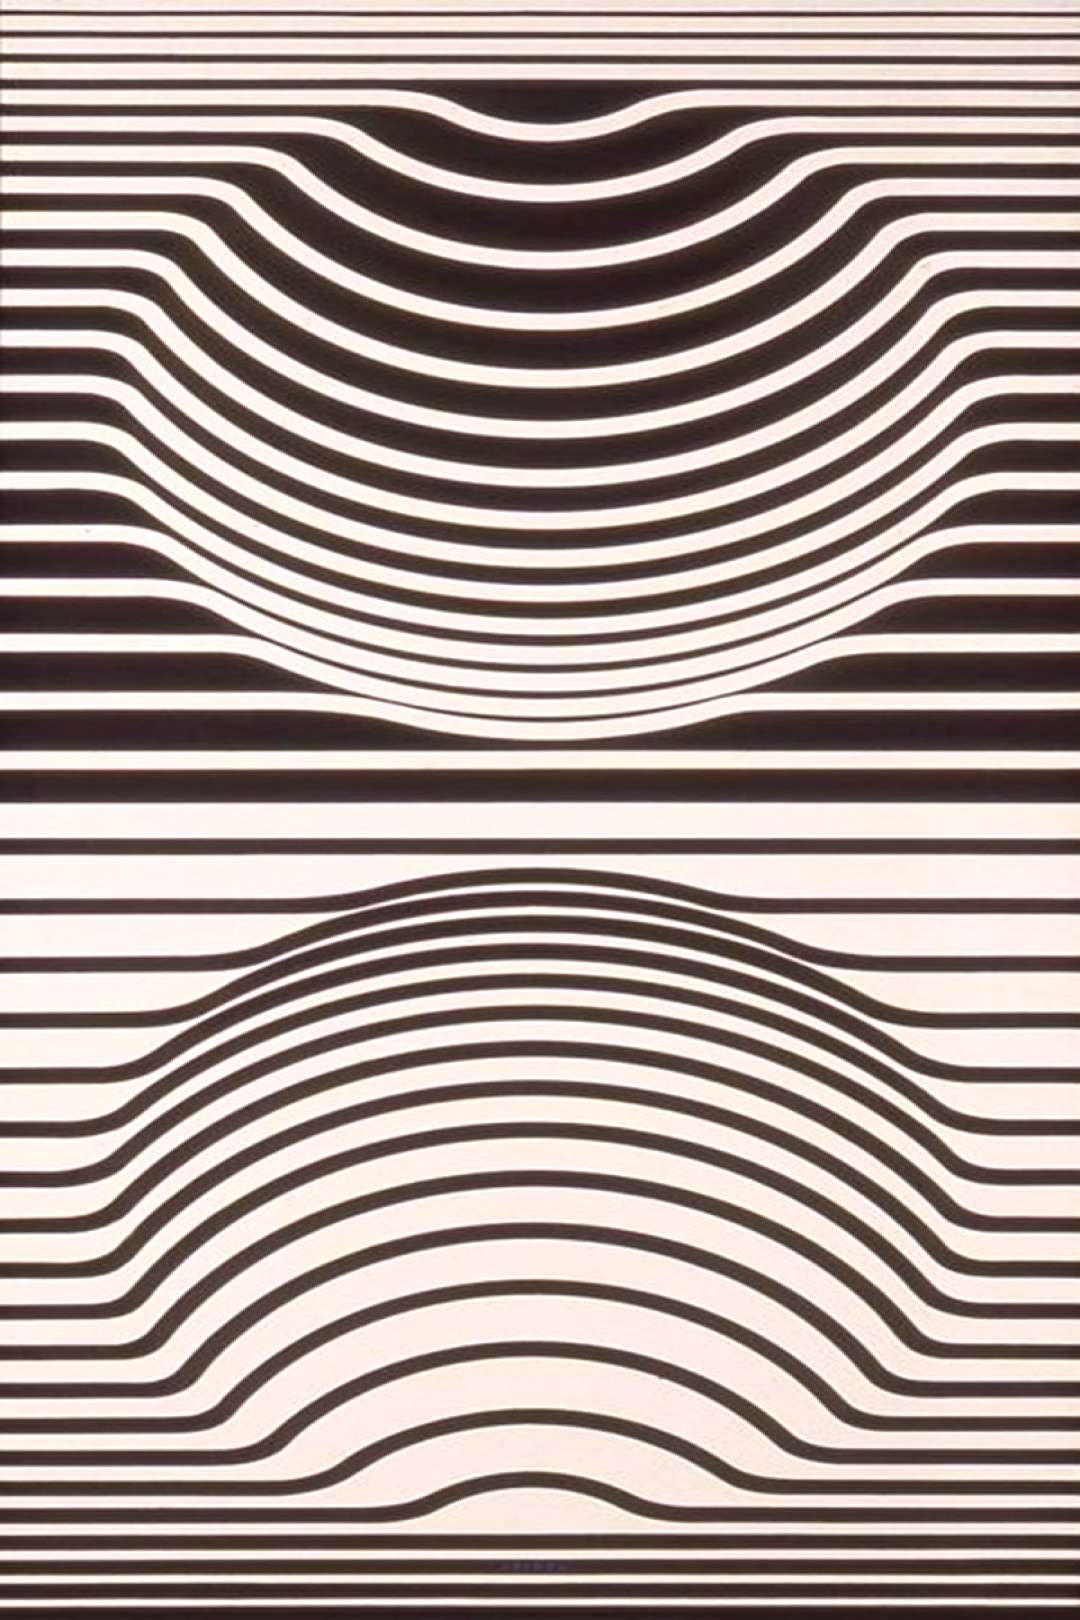 40 Examples of Optical Illusion Art and Painting